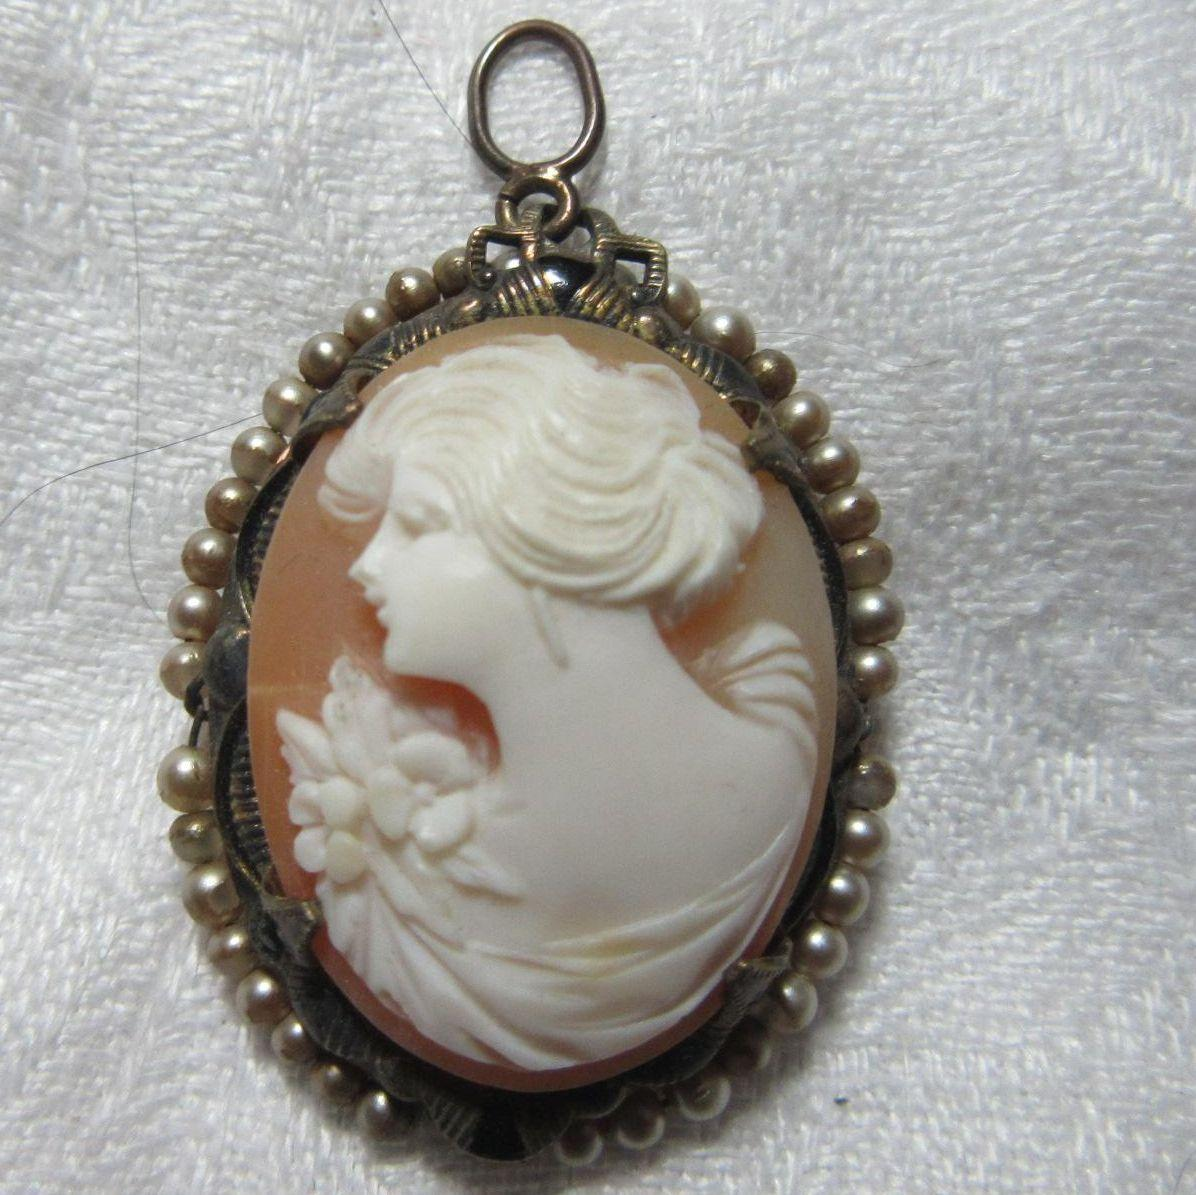 Rare Left Facing Carved Shell Cameo